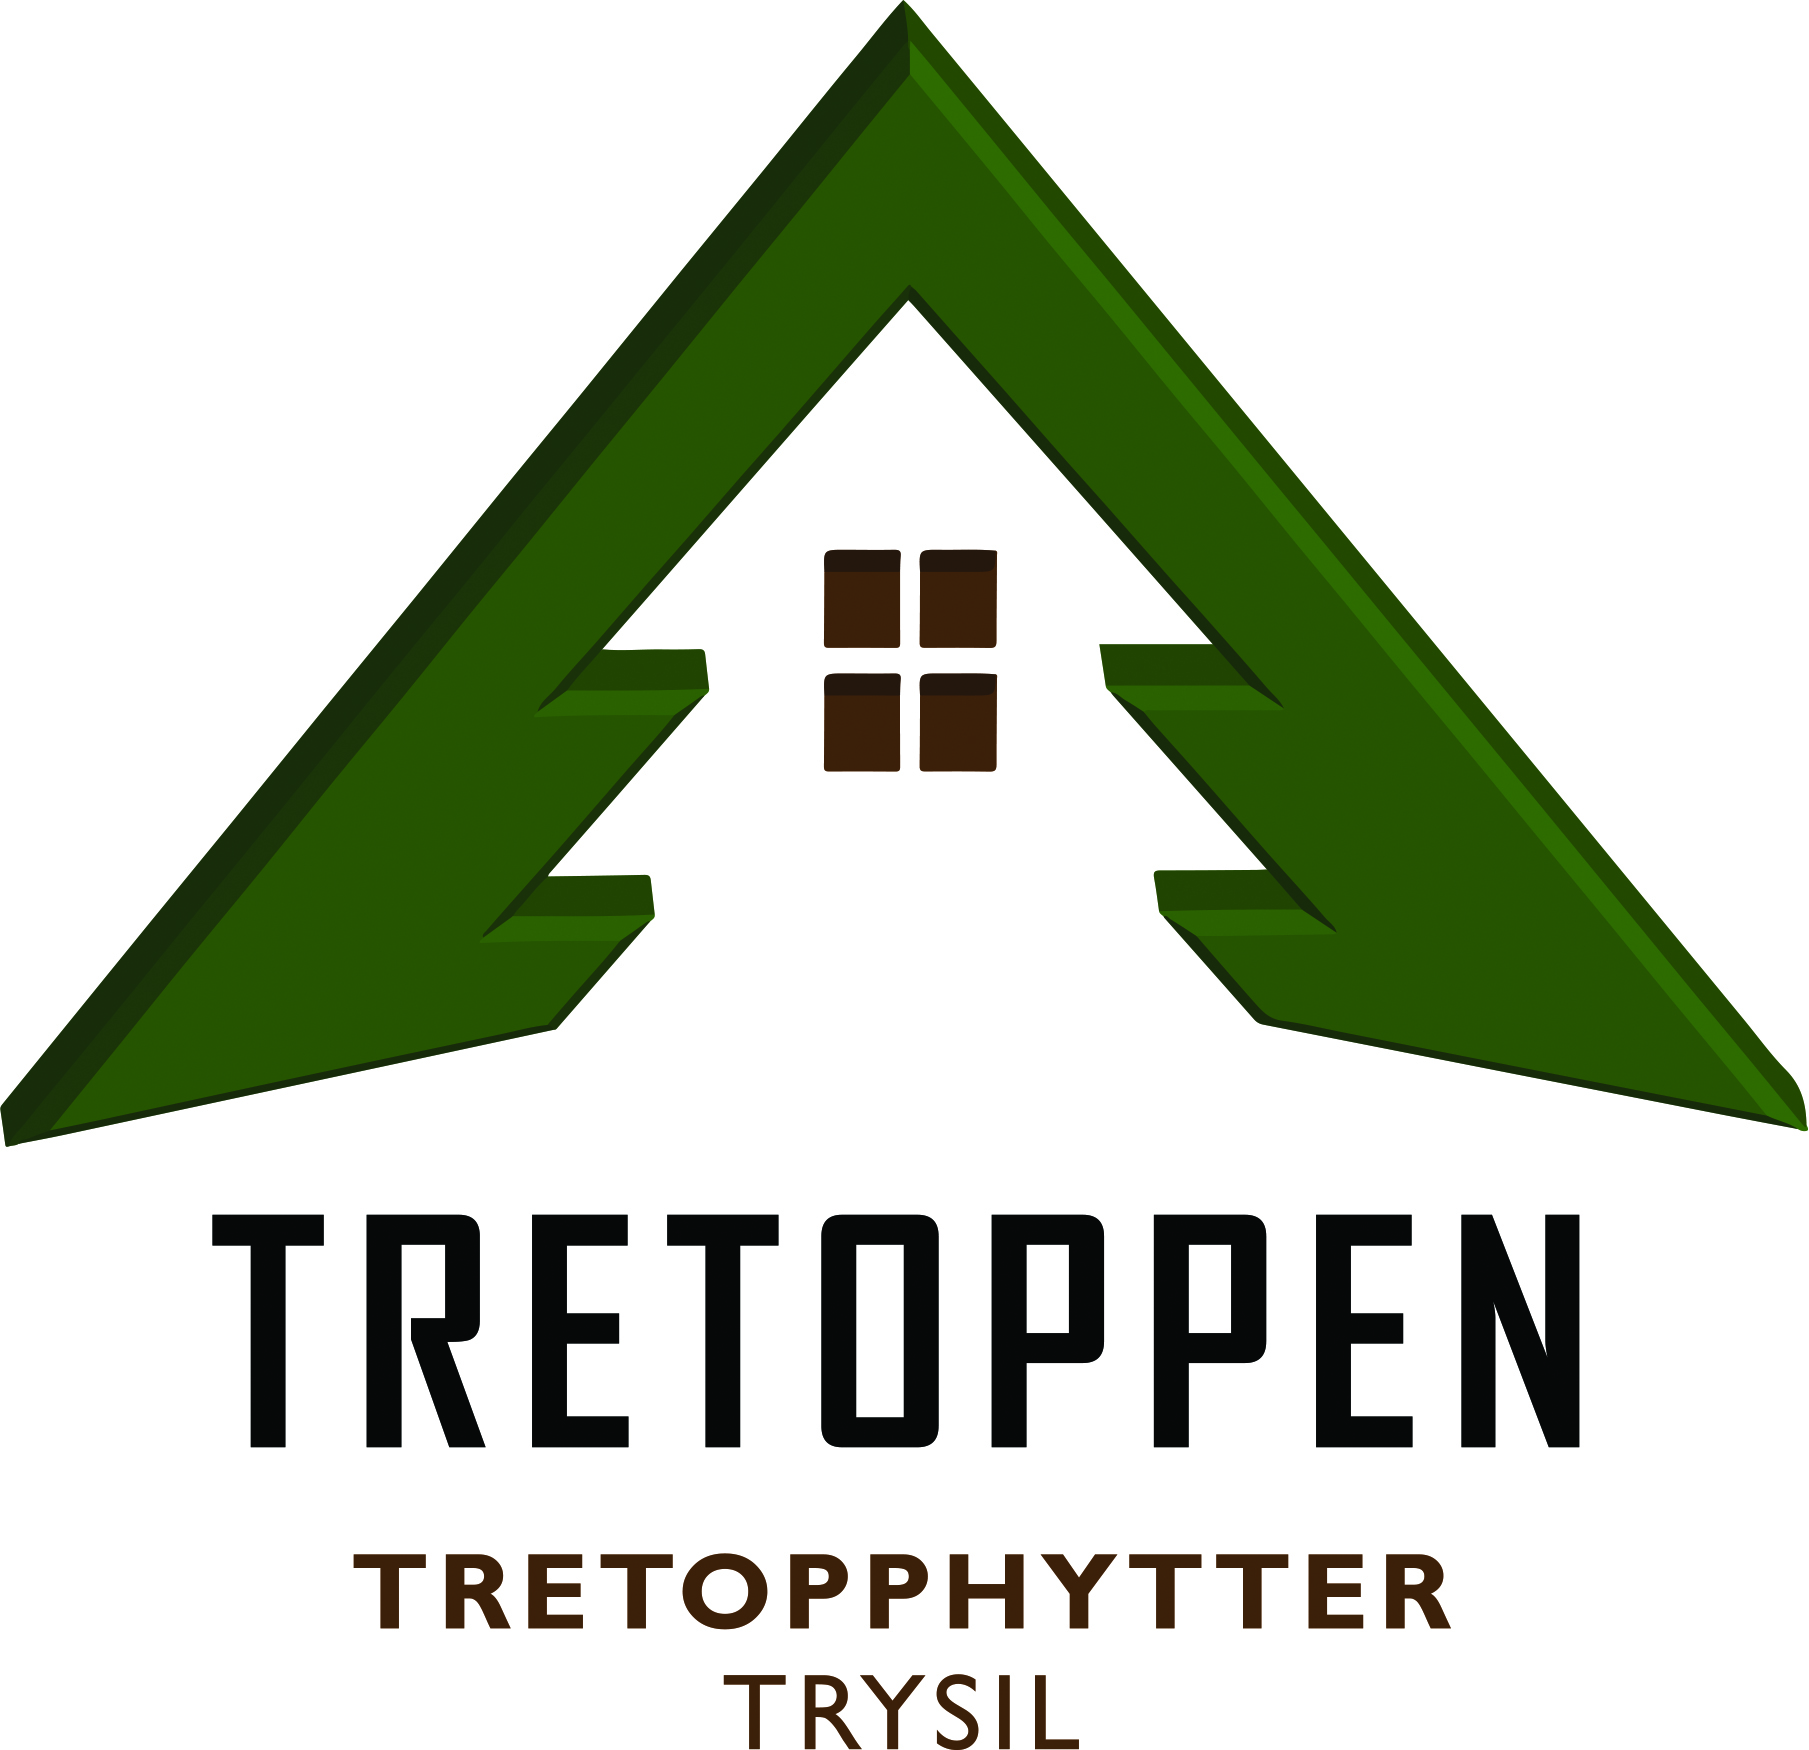 Tretoppen – Tree top huts in Trysil